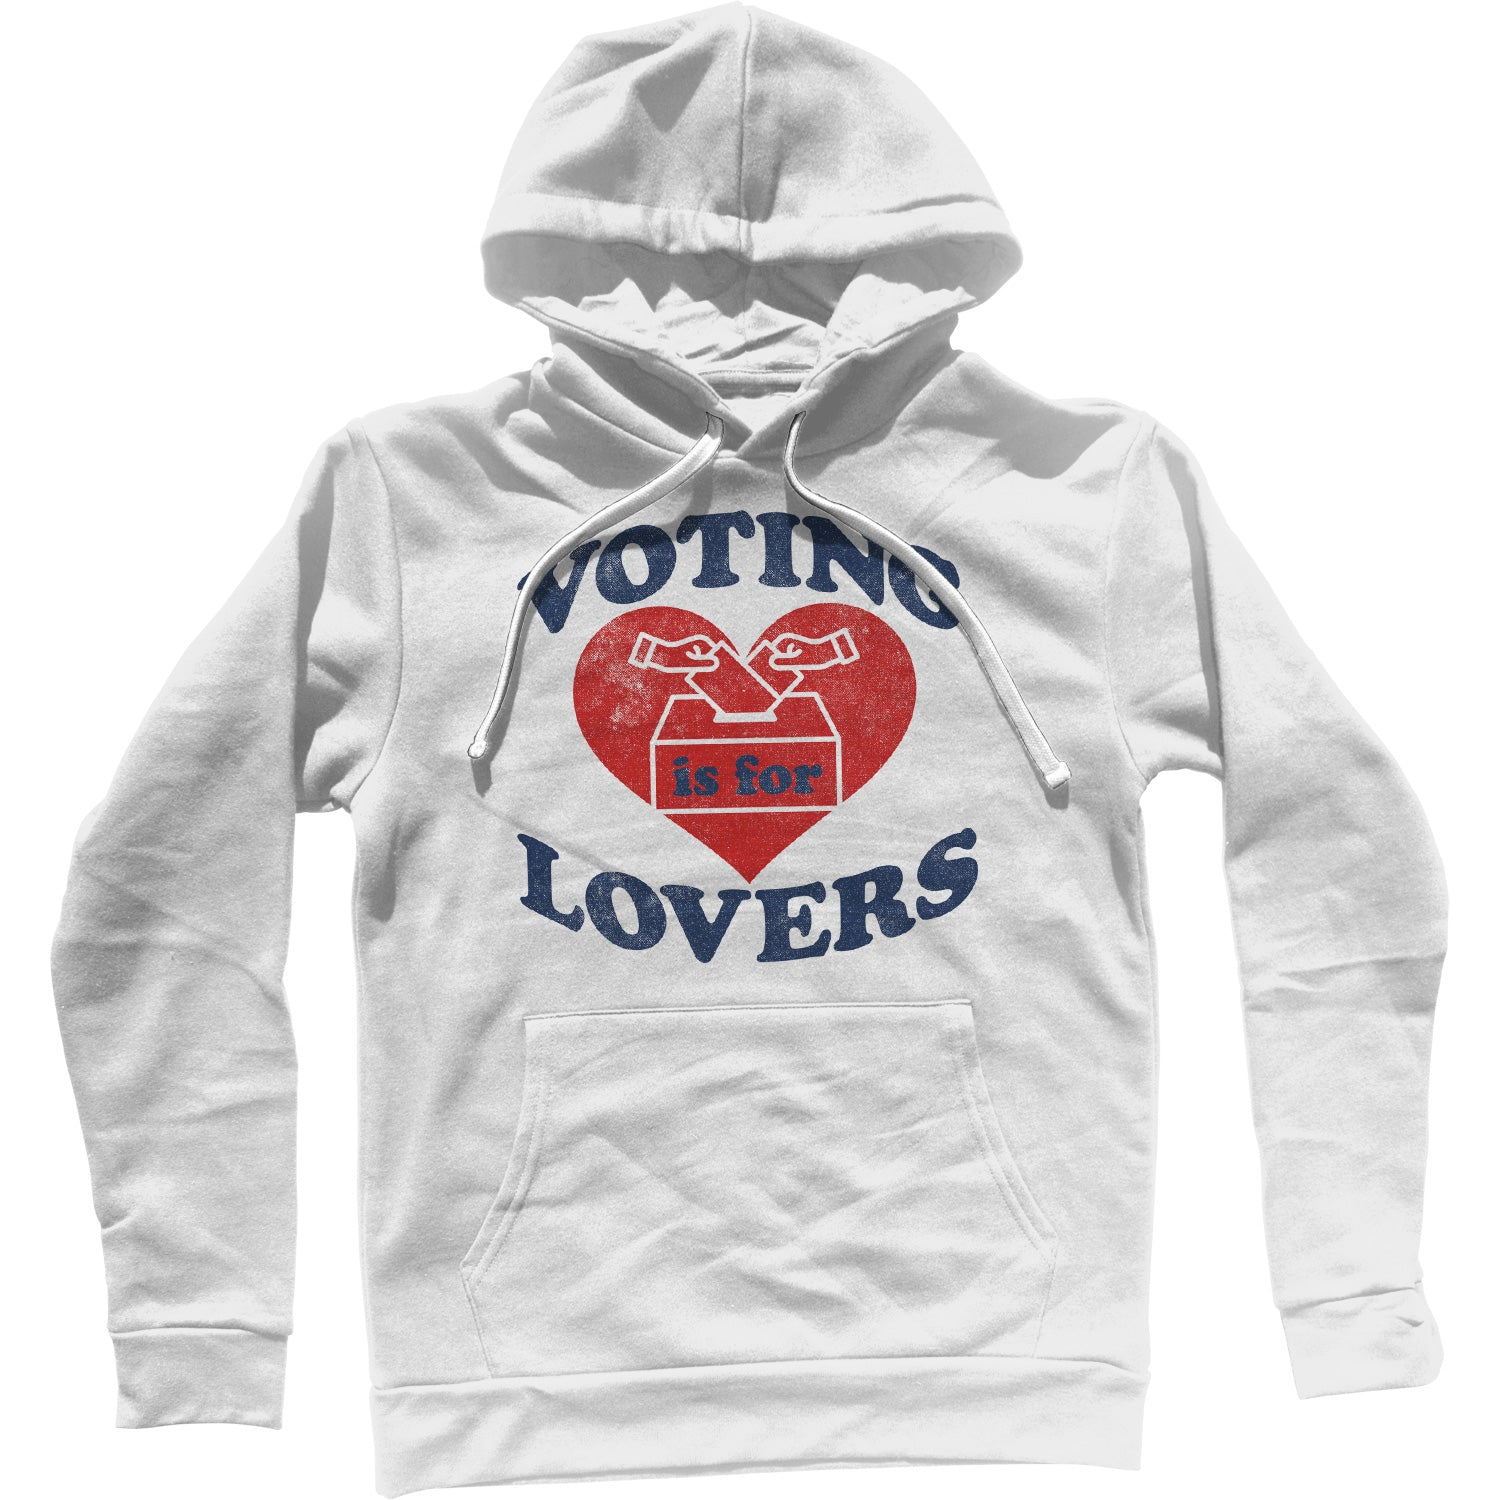 Voting Is For Lovers Unisex Hoodie